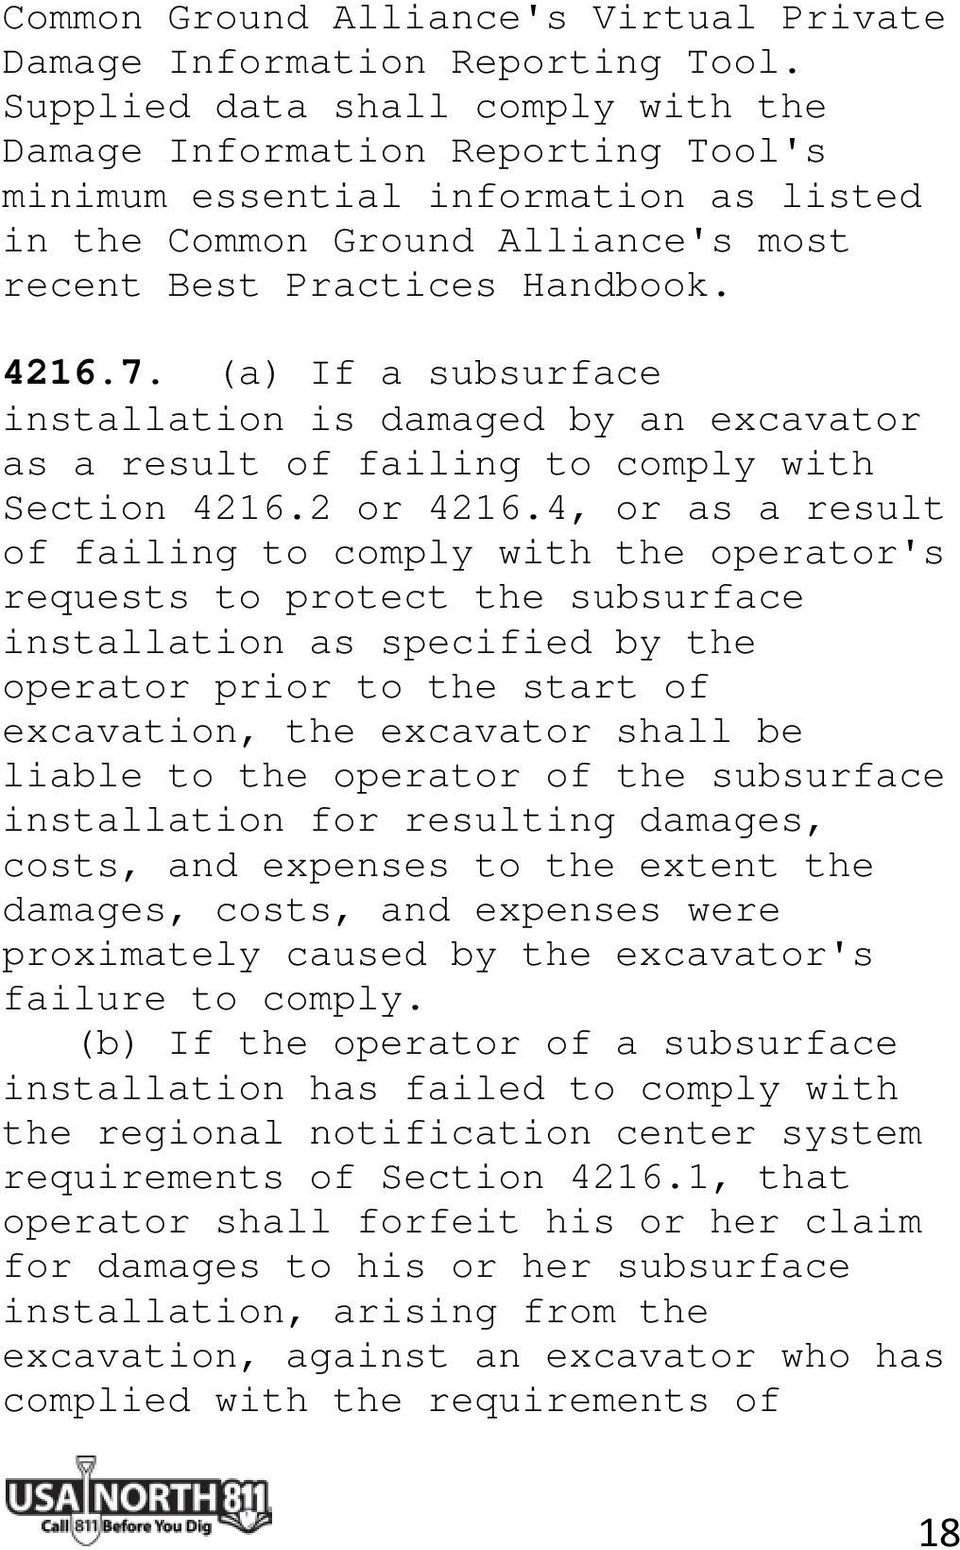 (a) If a subsurface installation is damaged by an excavator as a result of failing to comply with Section 4216.2 or 4216.